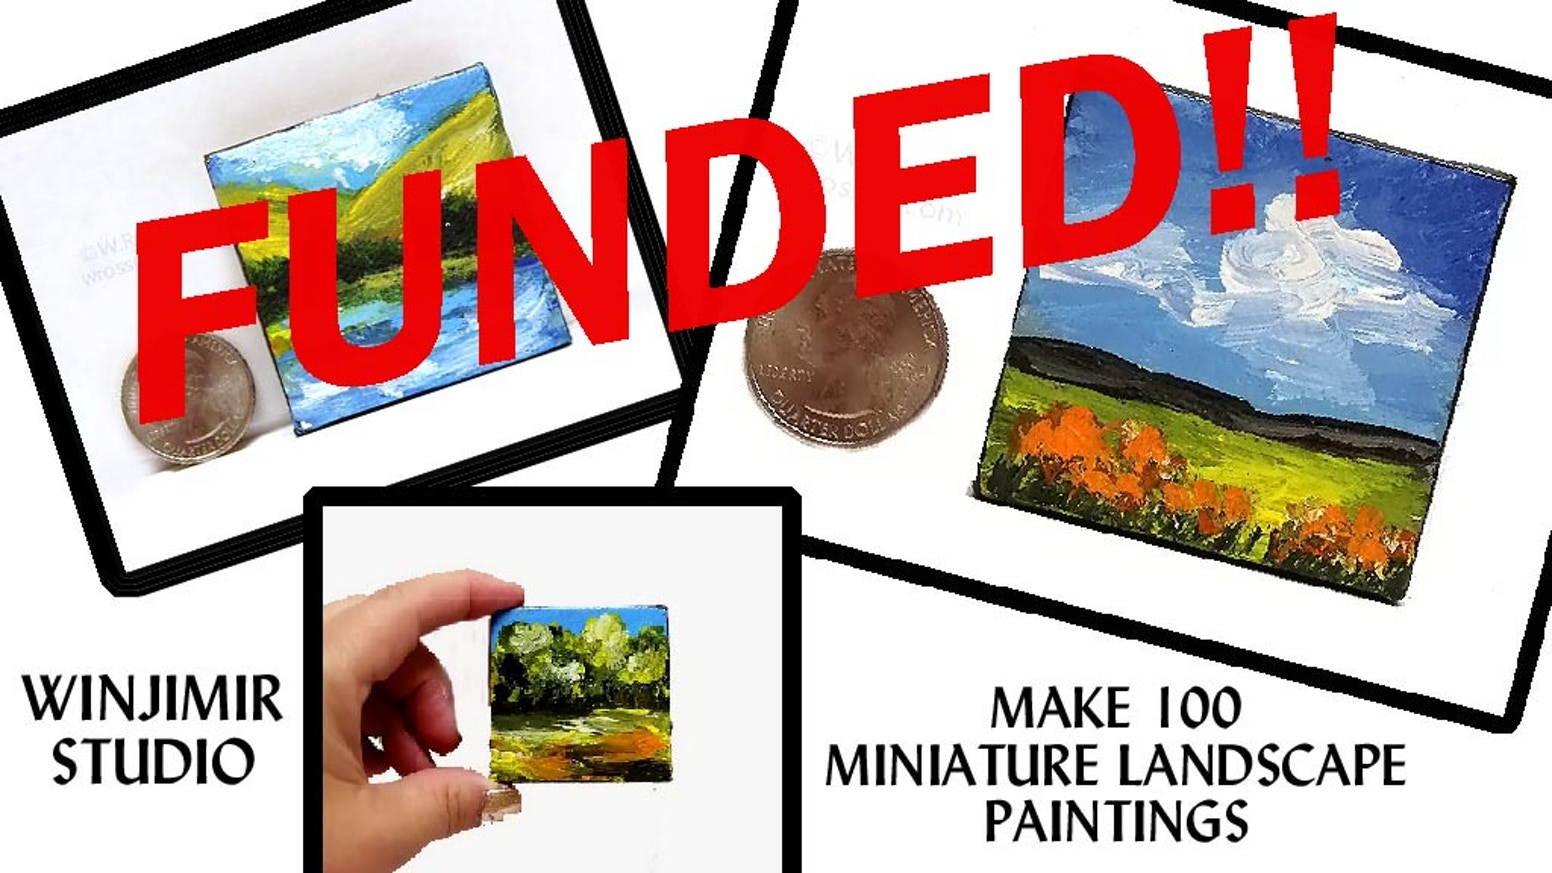 I will be creating 100 miniature landscape paintings. Each work will be an original painting, on 2 inch by 2 inch stretched canvas.